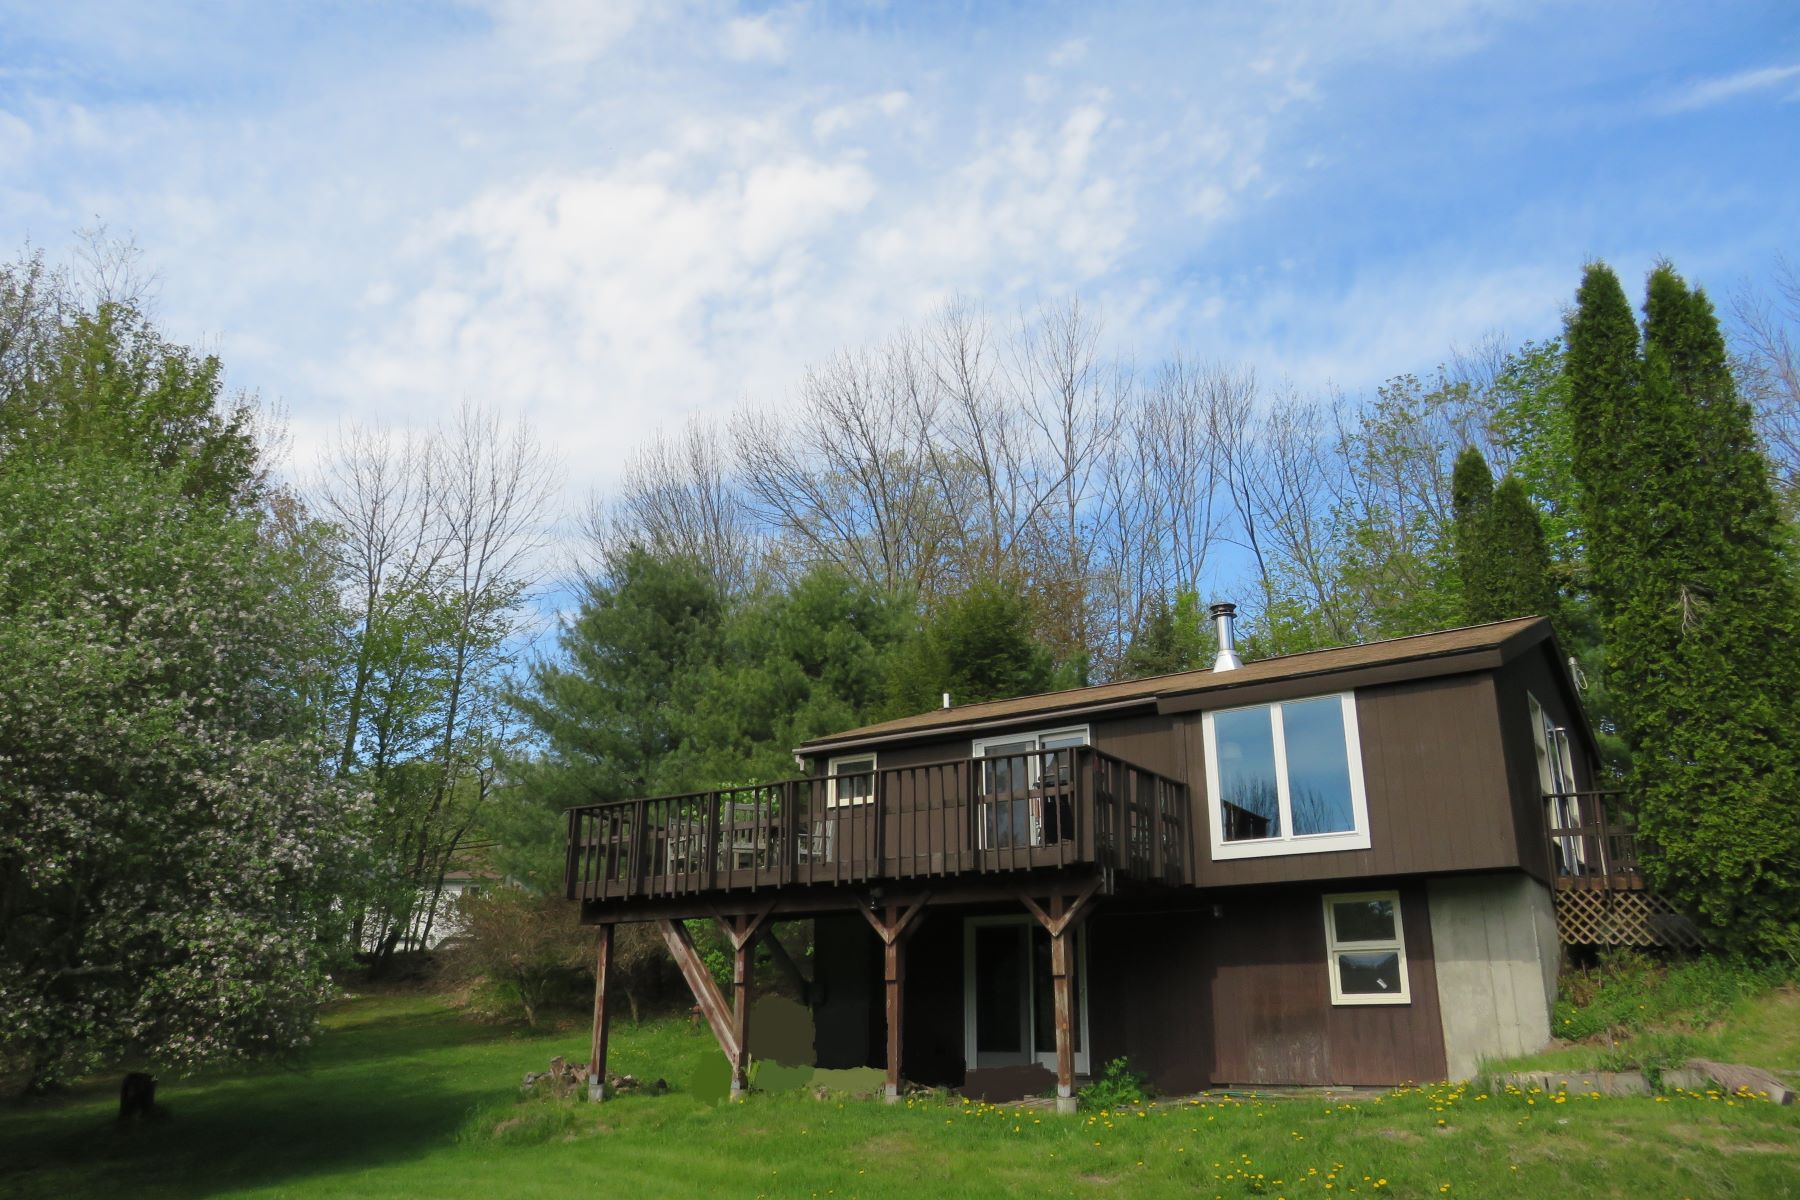 Single Family Home for Sale at Quick drive to Lebanon and Hanover 224 Hardy Hill Lebanon, New Hampshire, 03766 United States